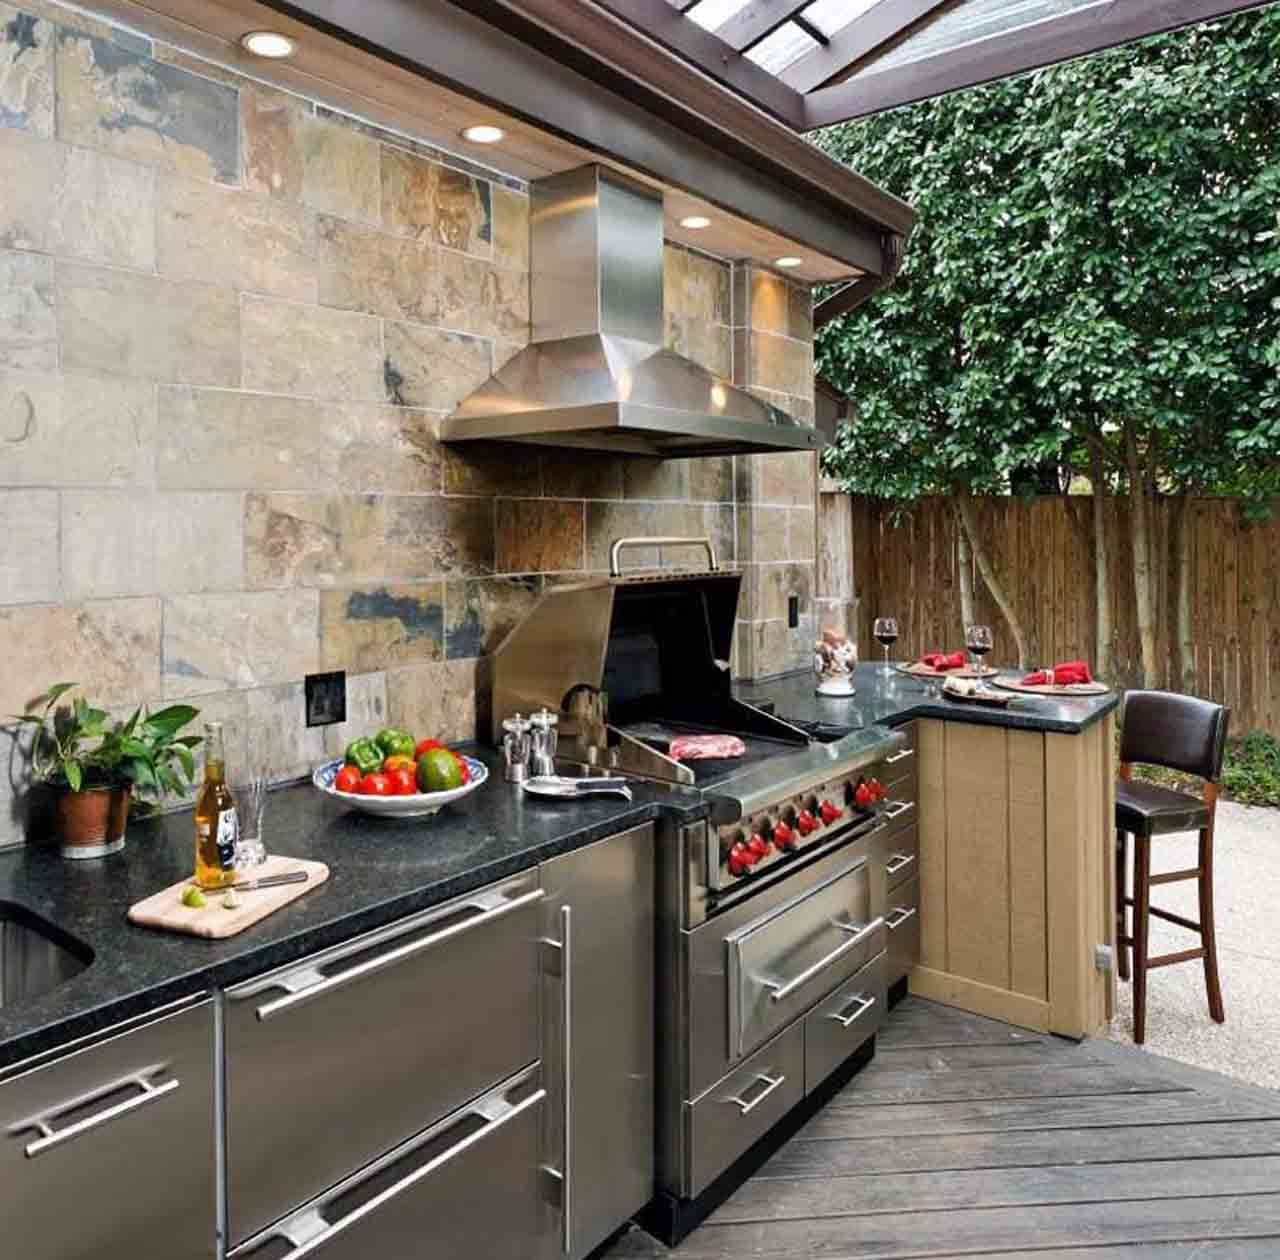 Backyard Kitchen Garden Design: Planning Your Own Outdoor Kitchens: Modern Outdoor Kitchen